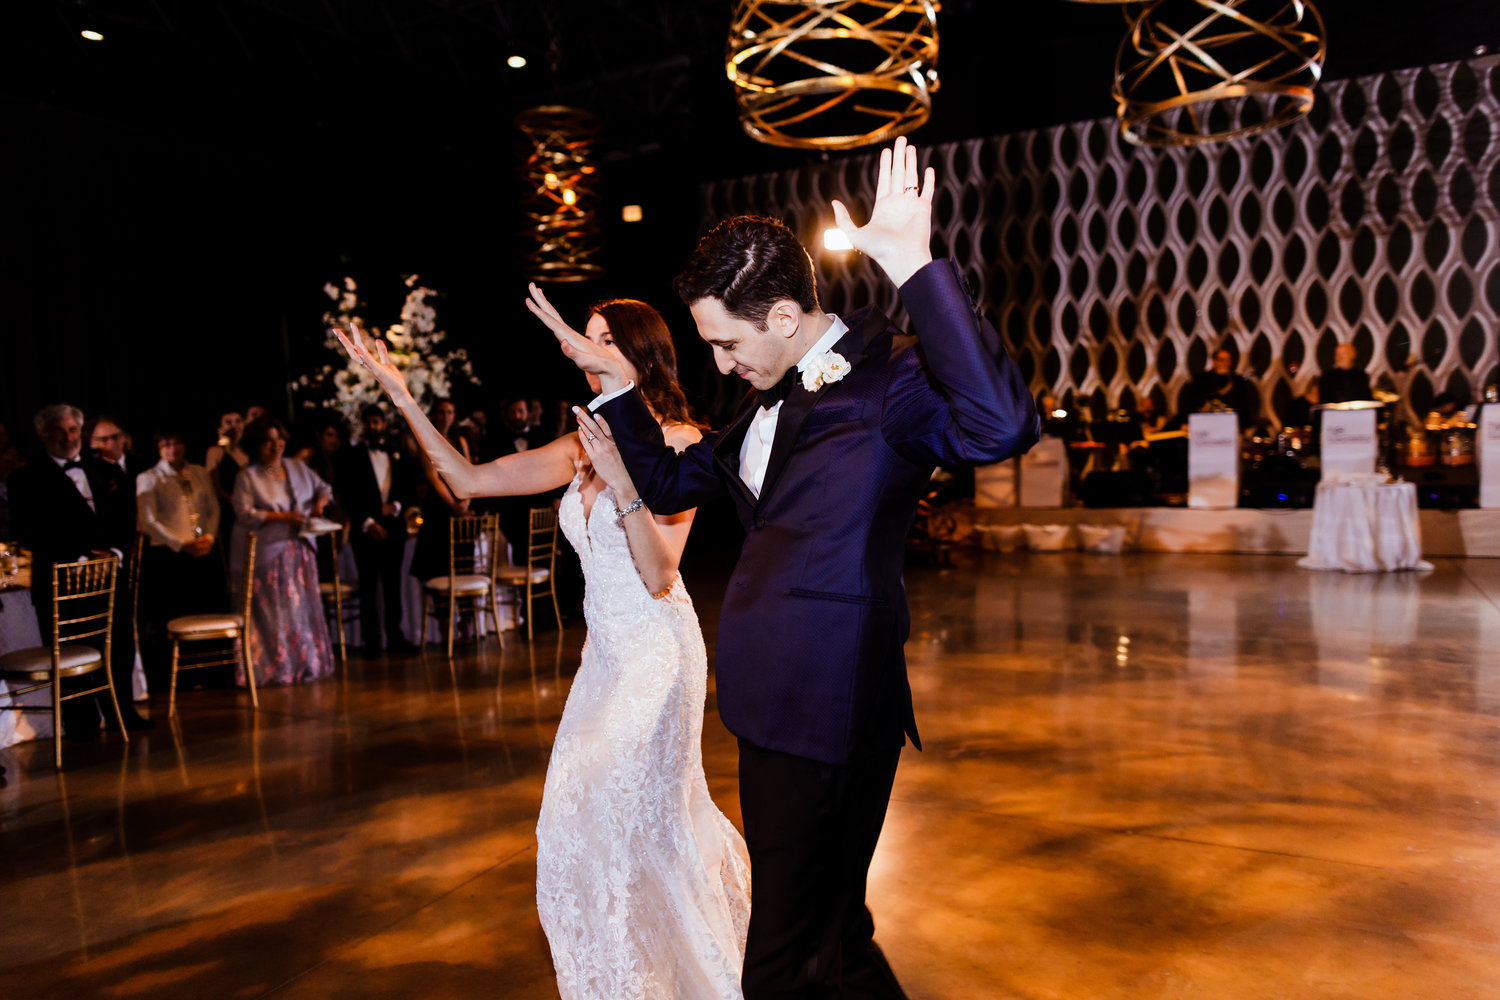 Best Wedding Dance Songs.Best Wedding Party Dance Songs Duet Dance Studio Chicago